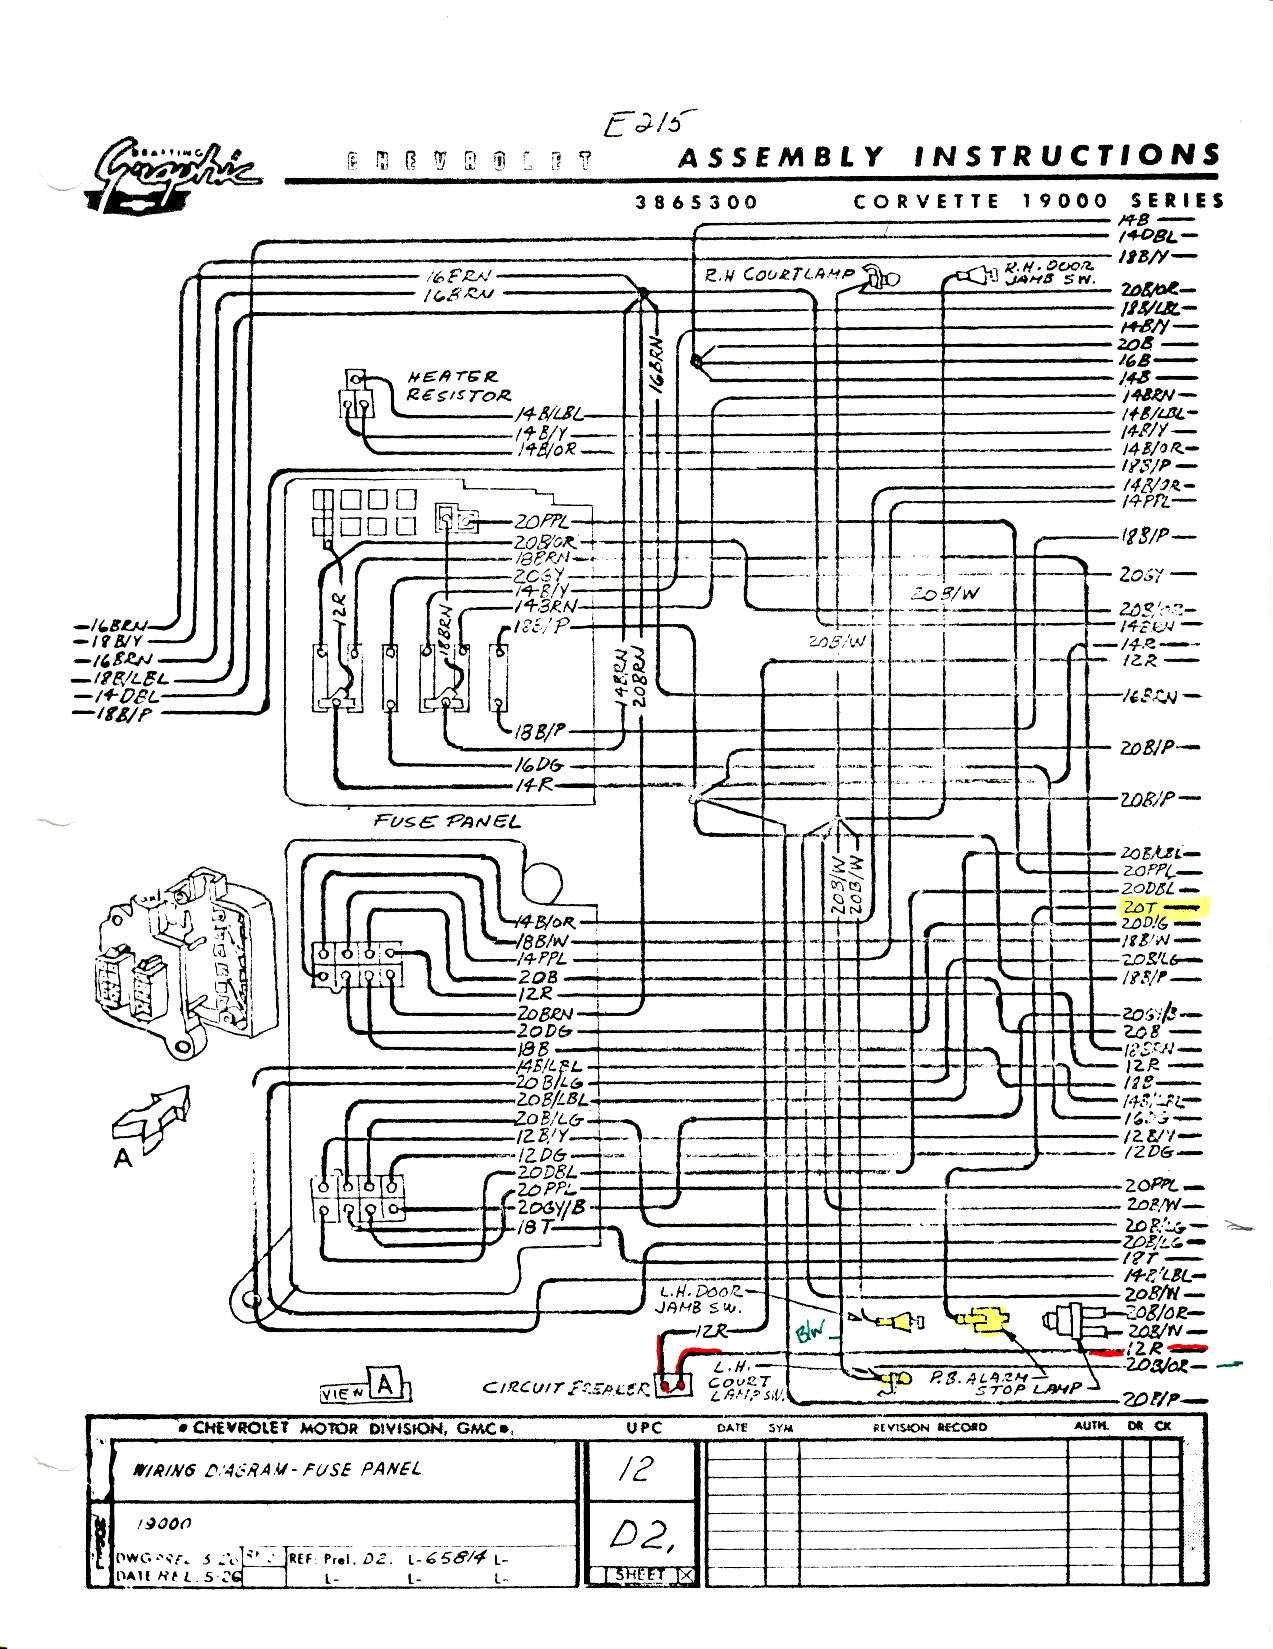 hight resolution of c6 engine harness diagram wiring diagram source c6 corvette wiring diagrams c6 engine harness diagram wiring